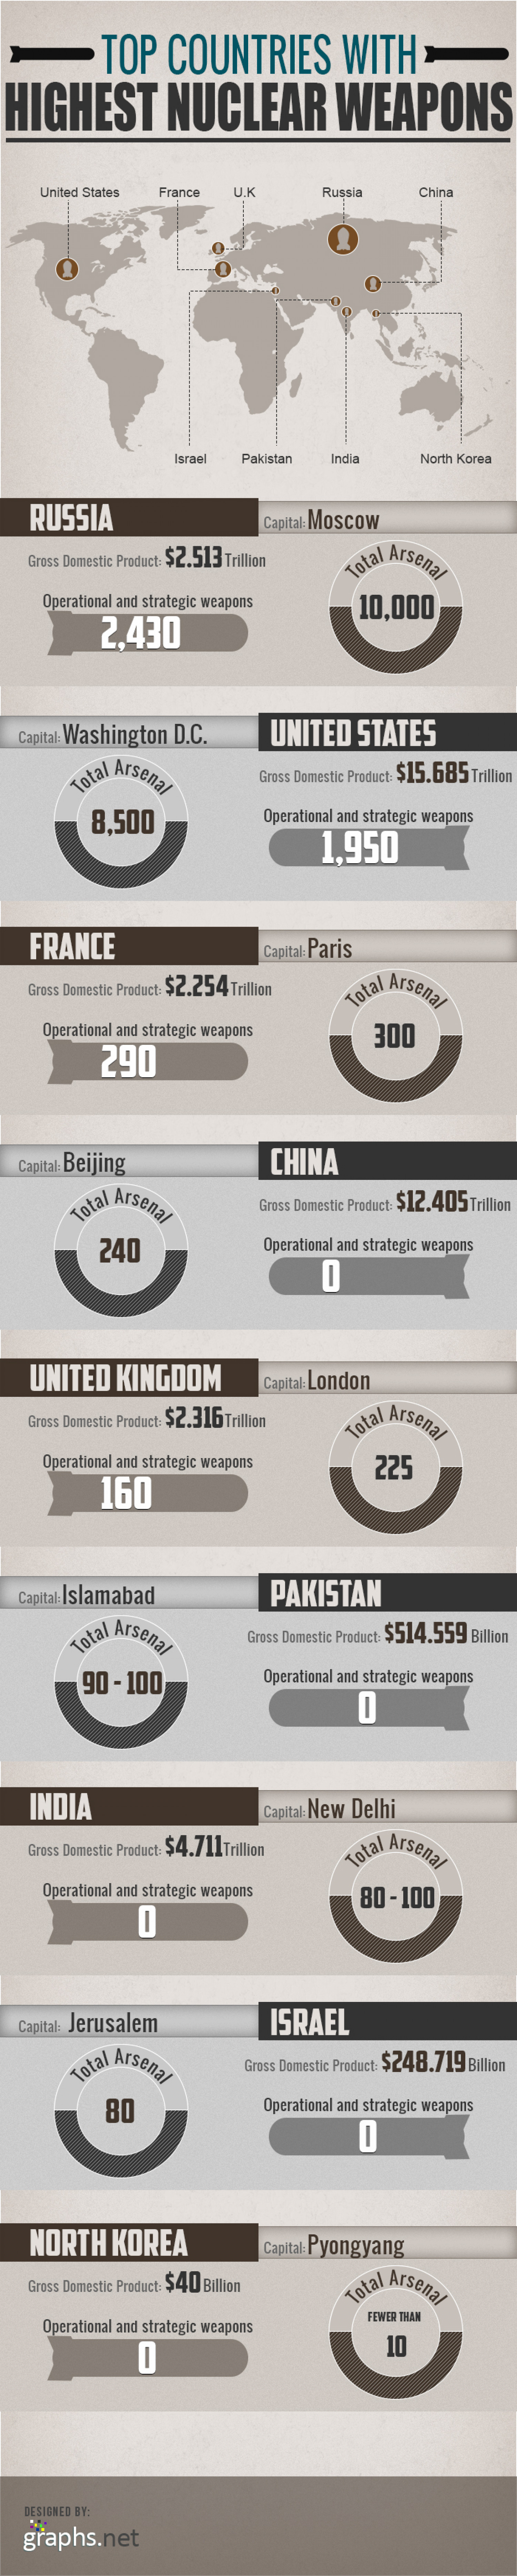 Top countries with highest nuclear weapons  Infographic